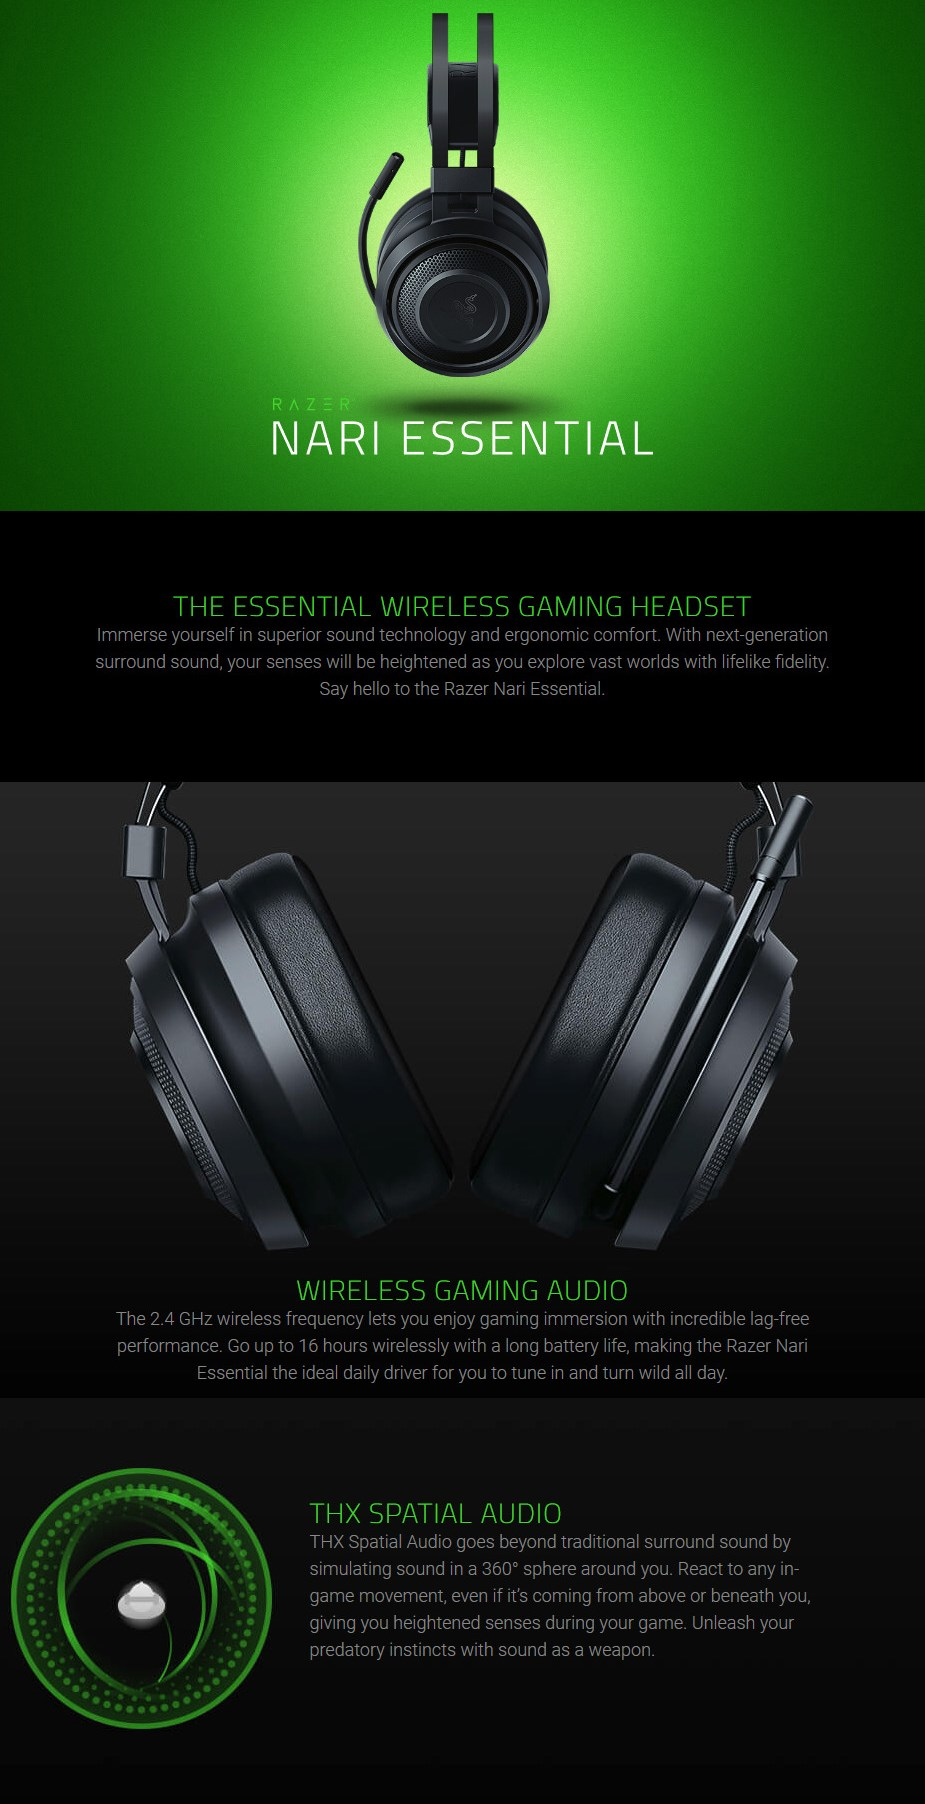 Razer Nari Essential Wireless Gaming Headset - Desktop Overview 1